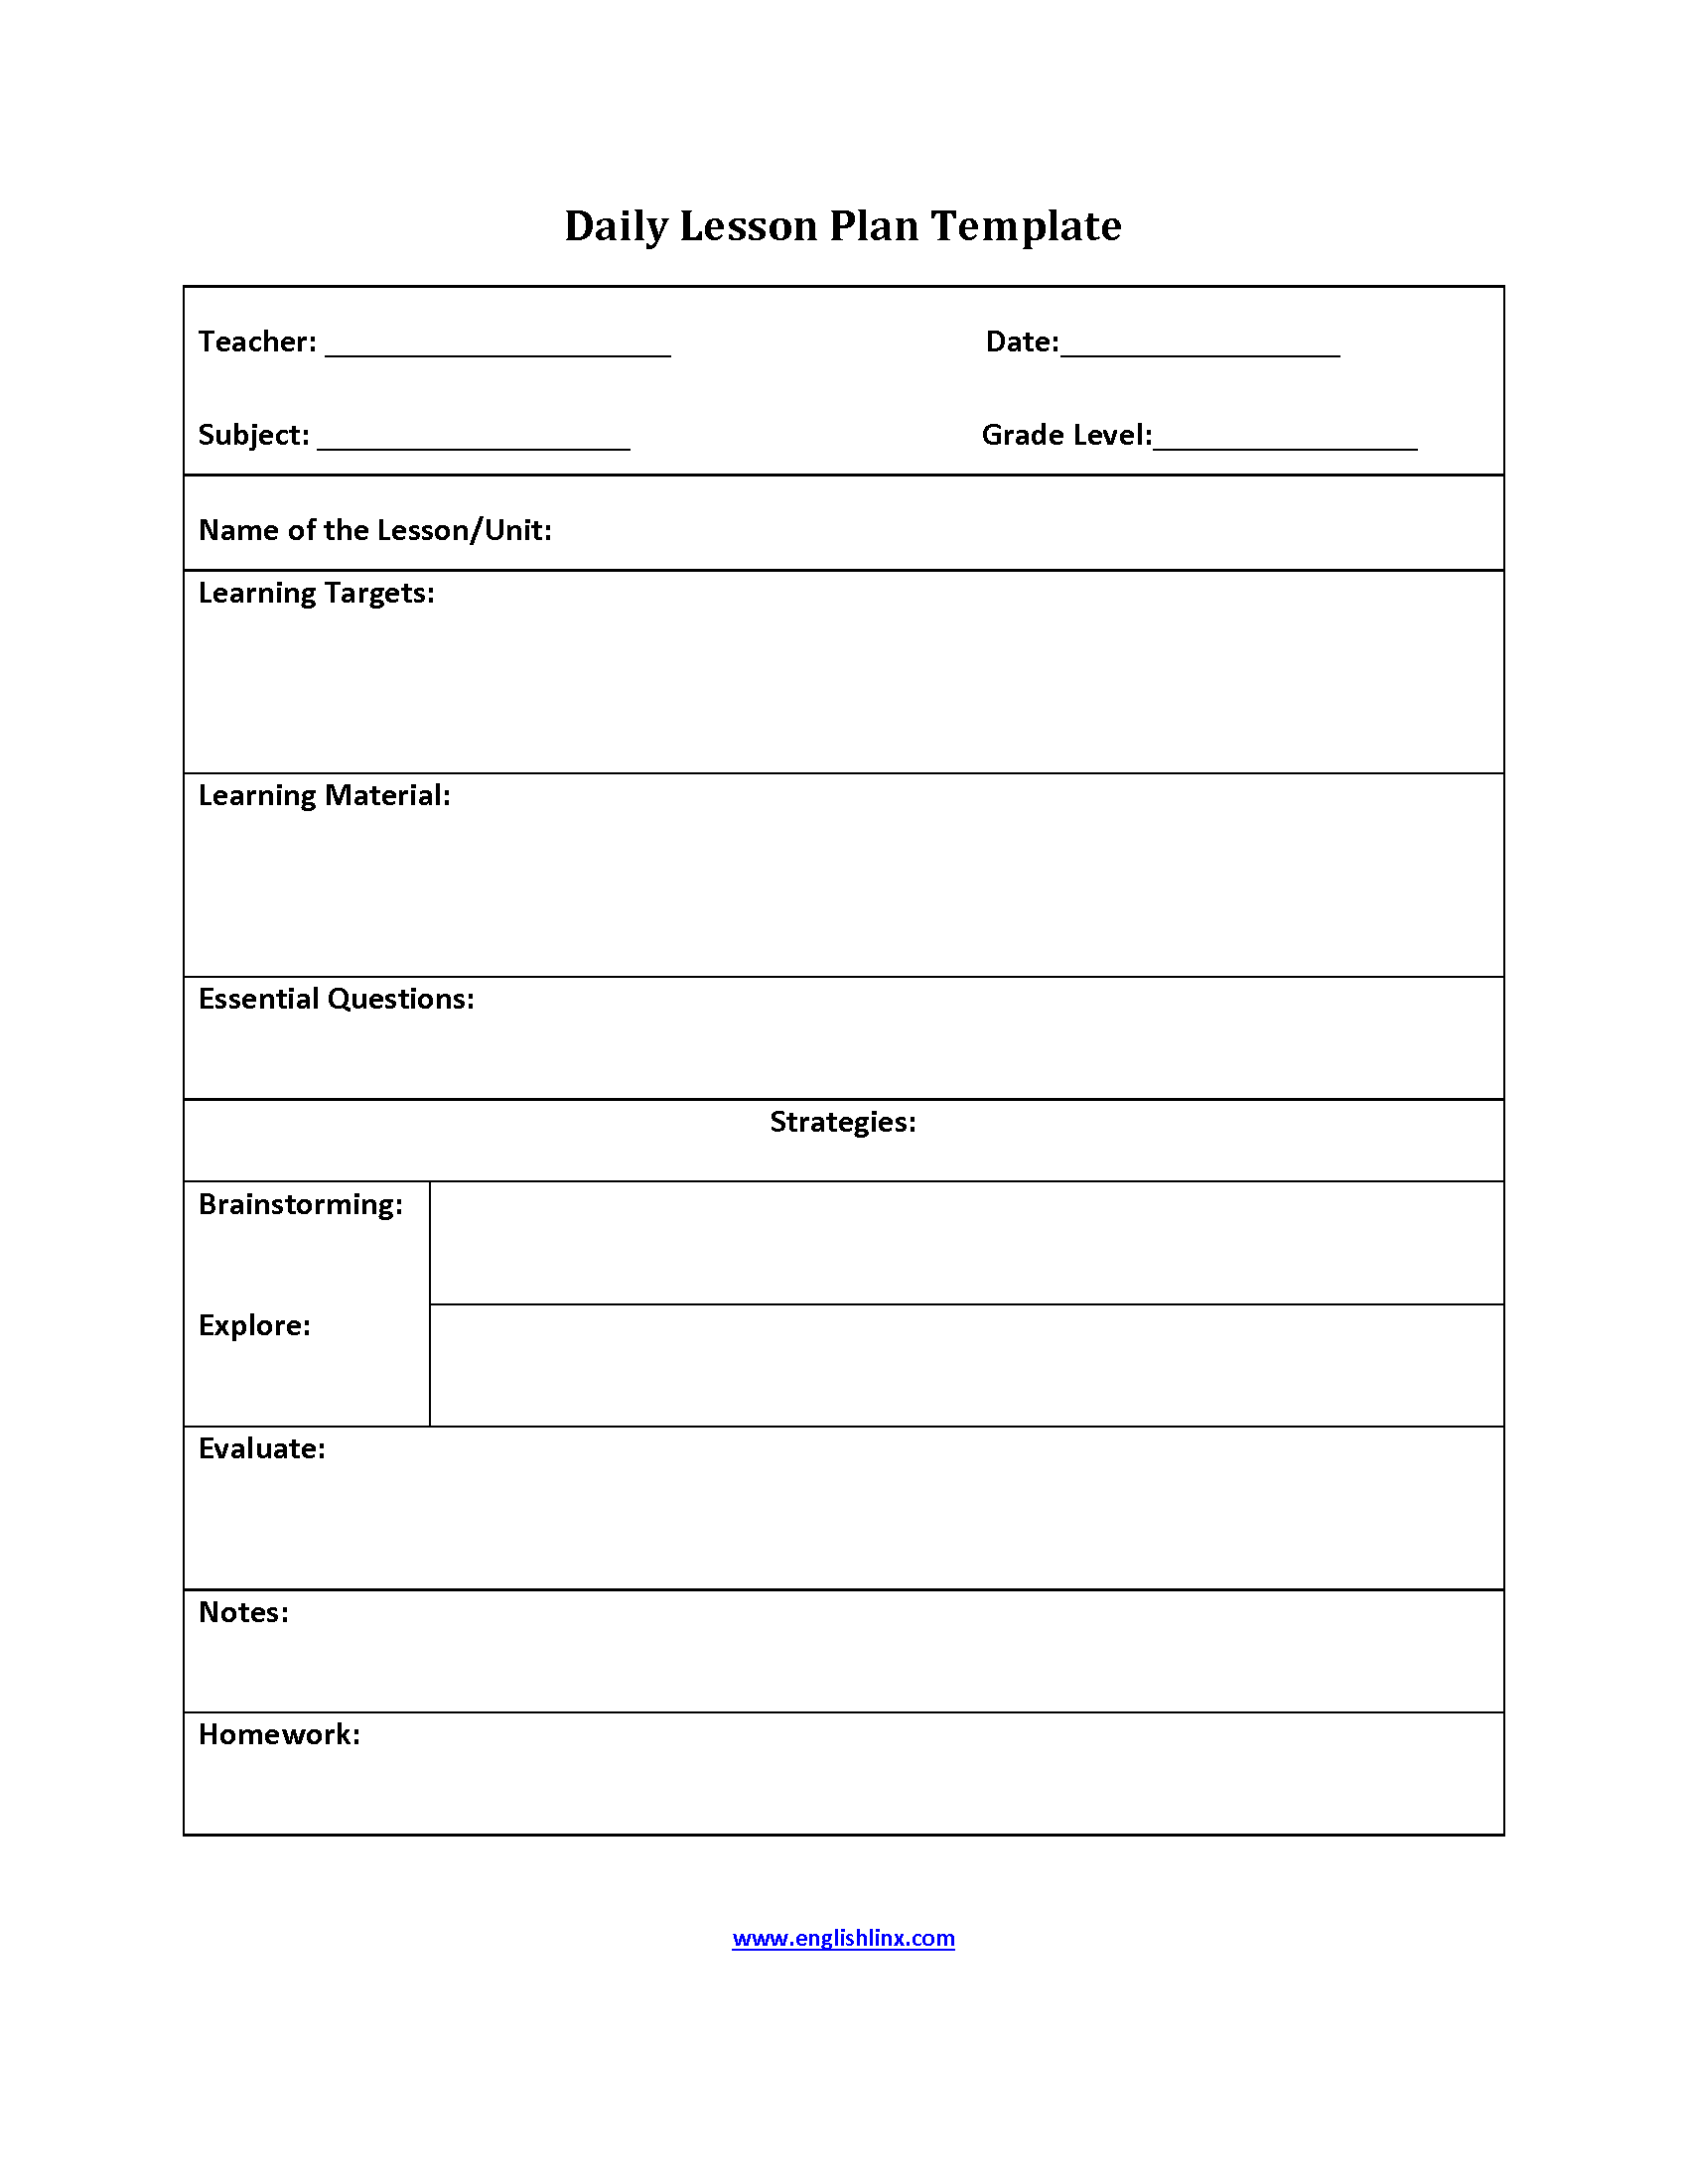 Englishlinxcom Lesson Plan Template - Lesson plan templates free